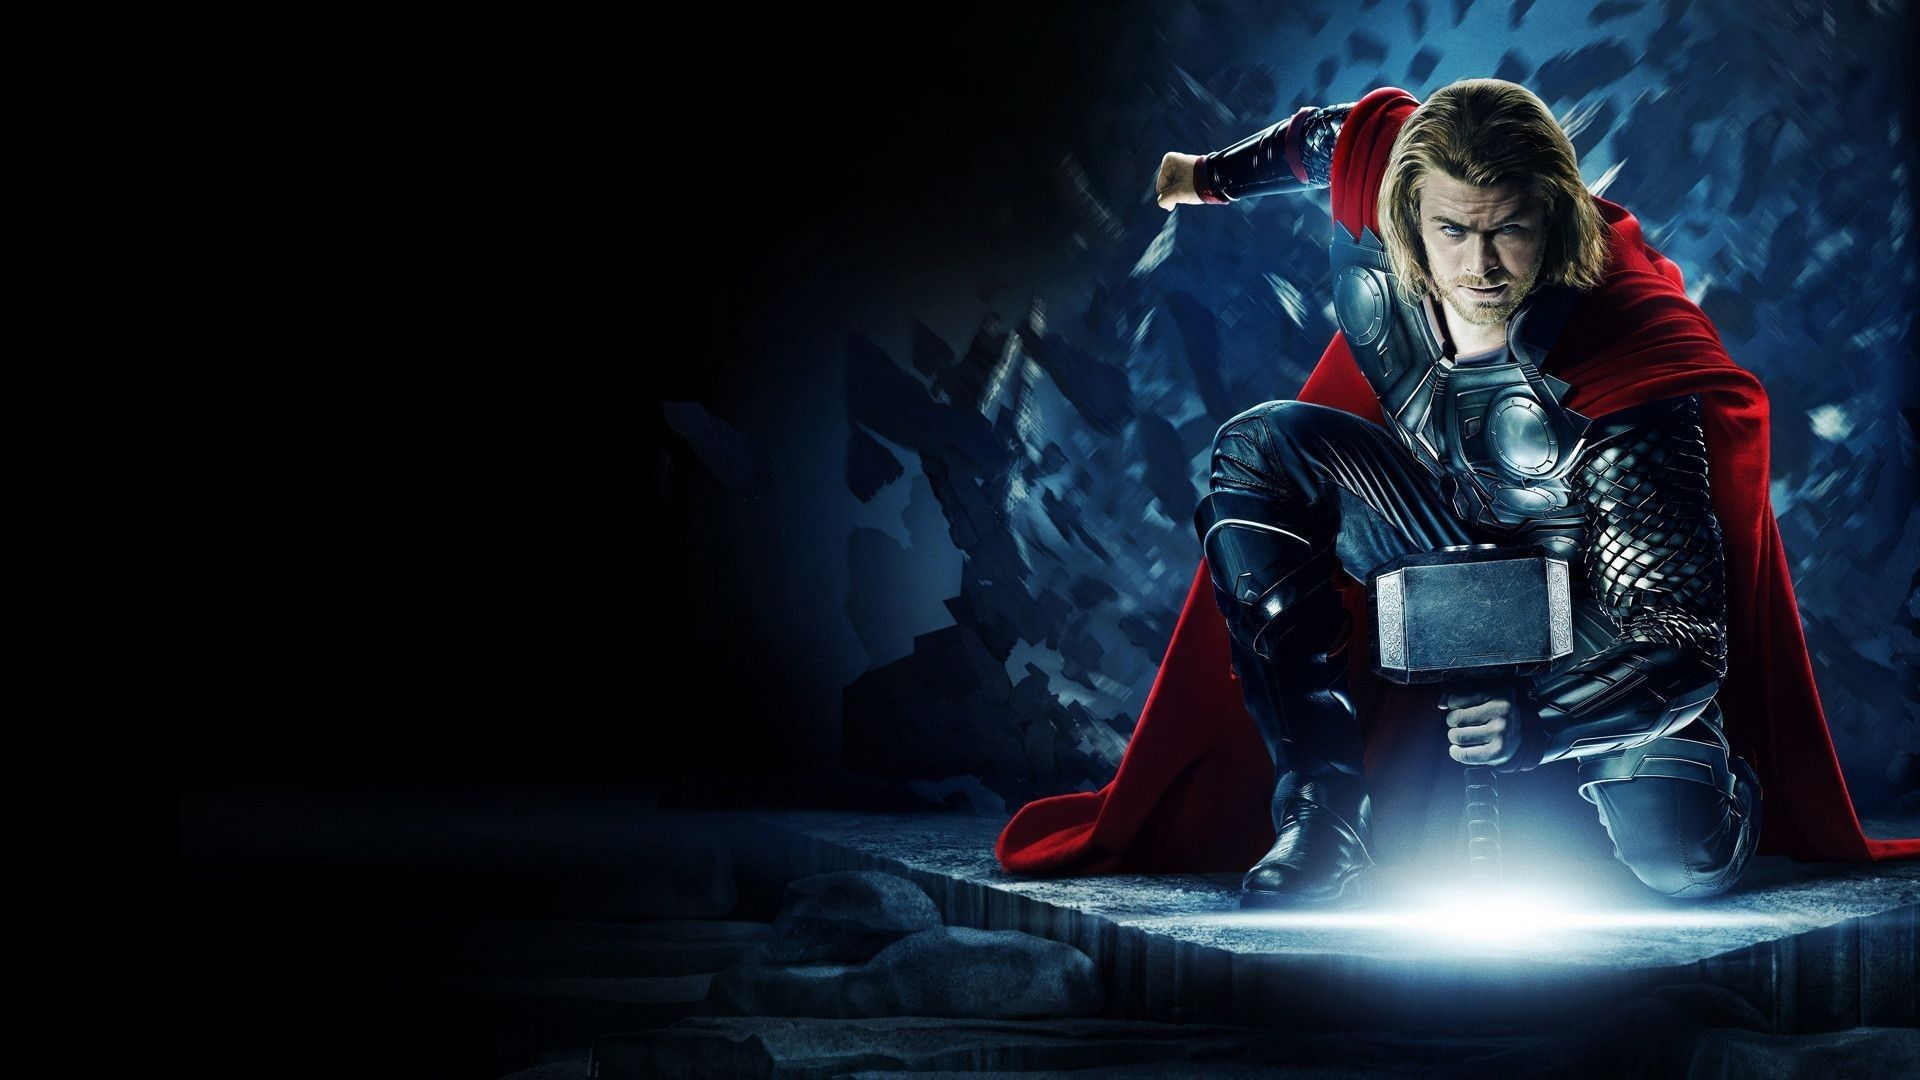 1920x1080 Thor Movie Multi Monitor Wallpapers Hd Wallpapers 1920a 1200 Thor Hd Wallpapers 35 Wallpa Thor Wallpaper Superhero Wallpaper Superhero Wallpaper Hd